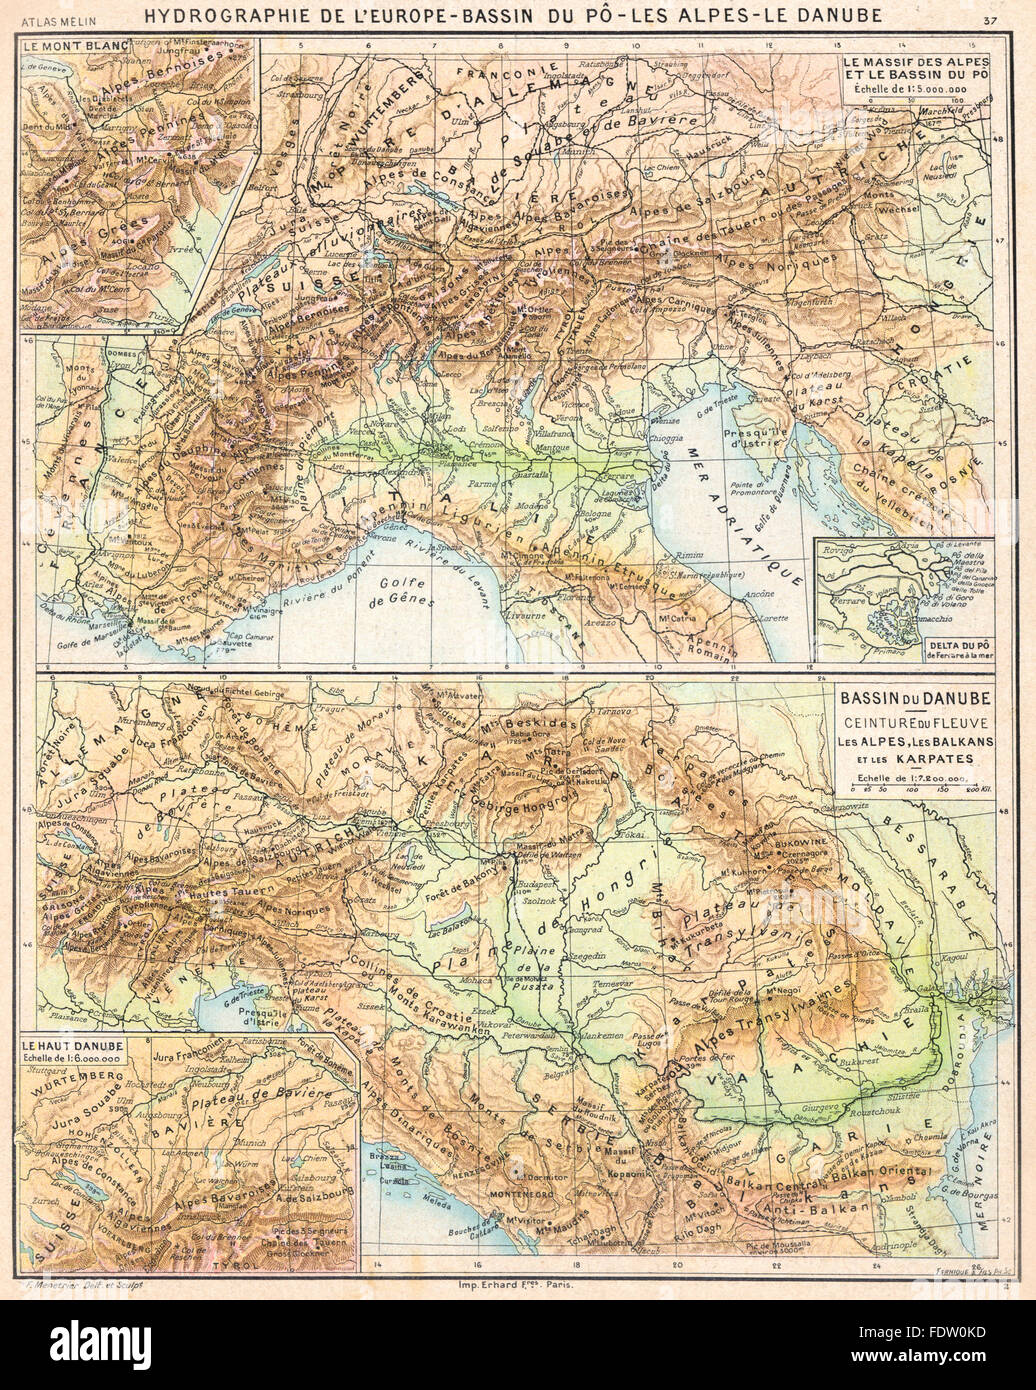 Europe Map 1900 Stock Photos Europe Map 1900 Stock Images Page 2